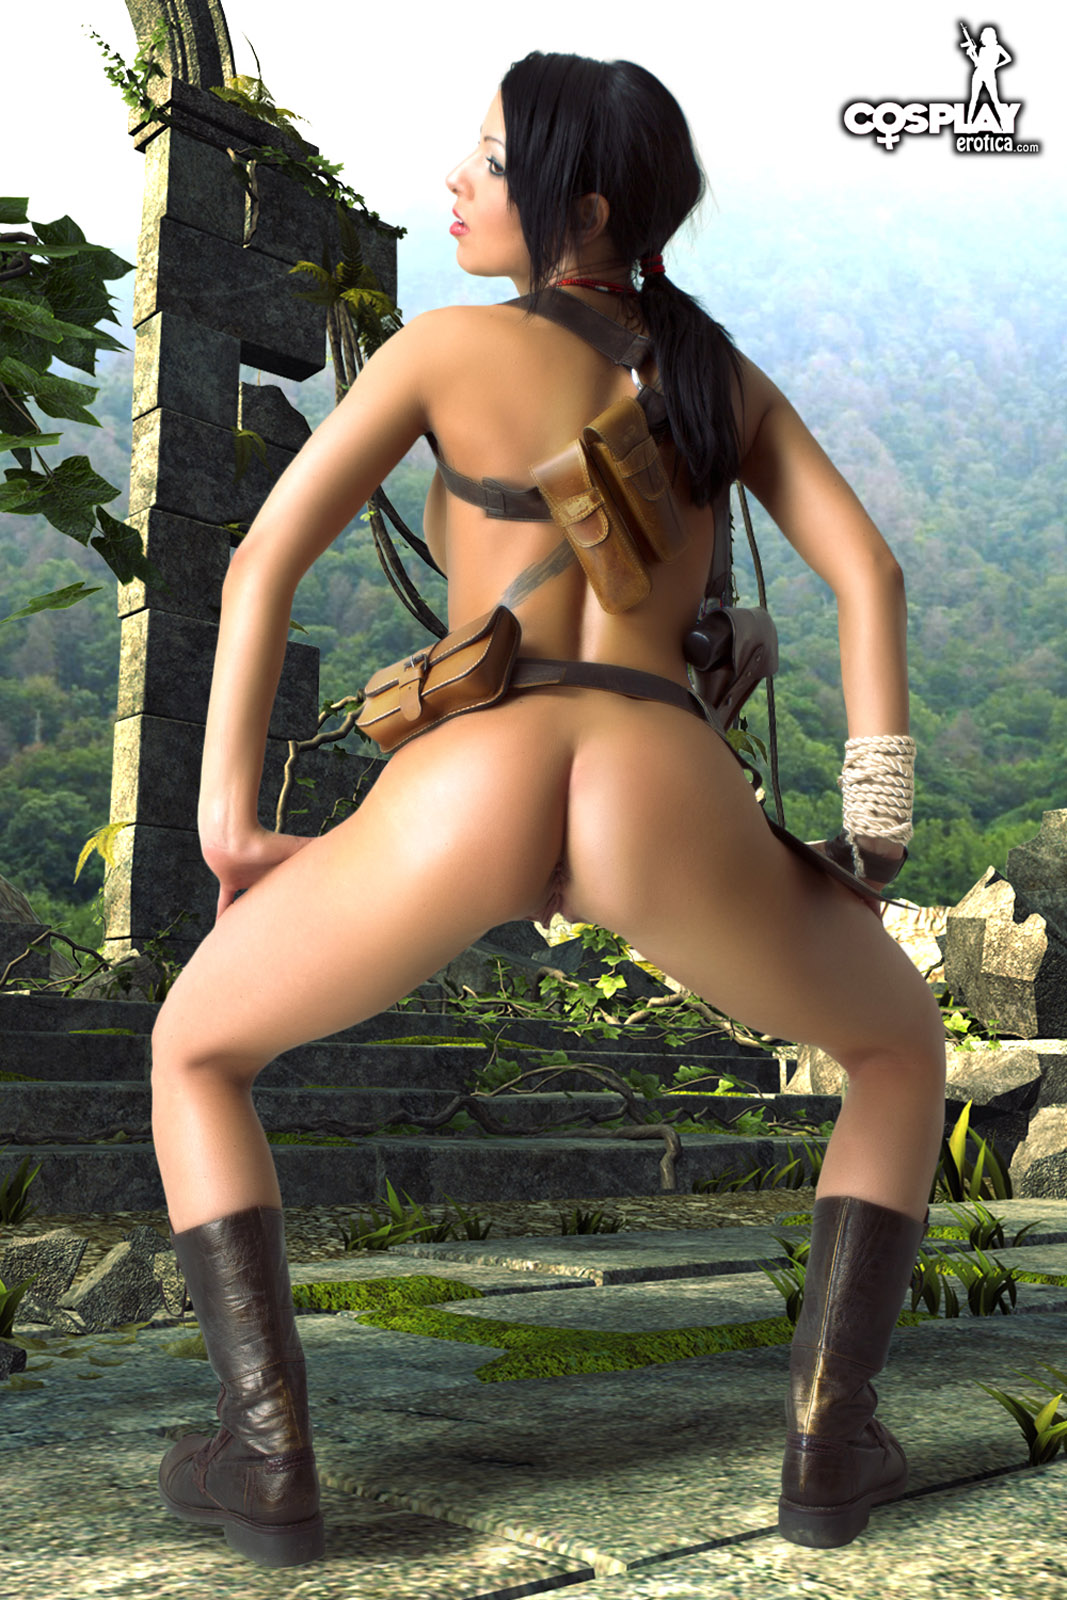 Tomb raider 2013 erotic naked sexy pornstar